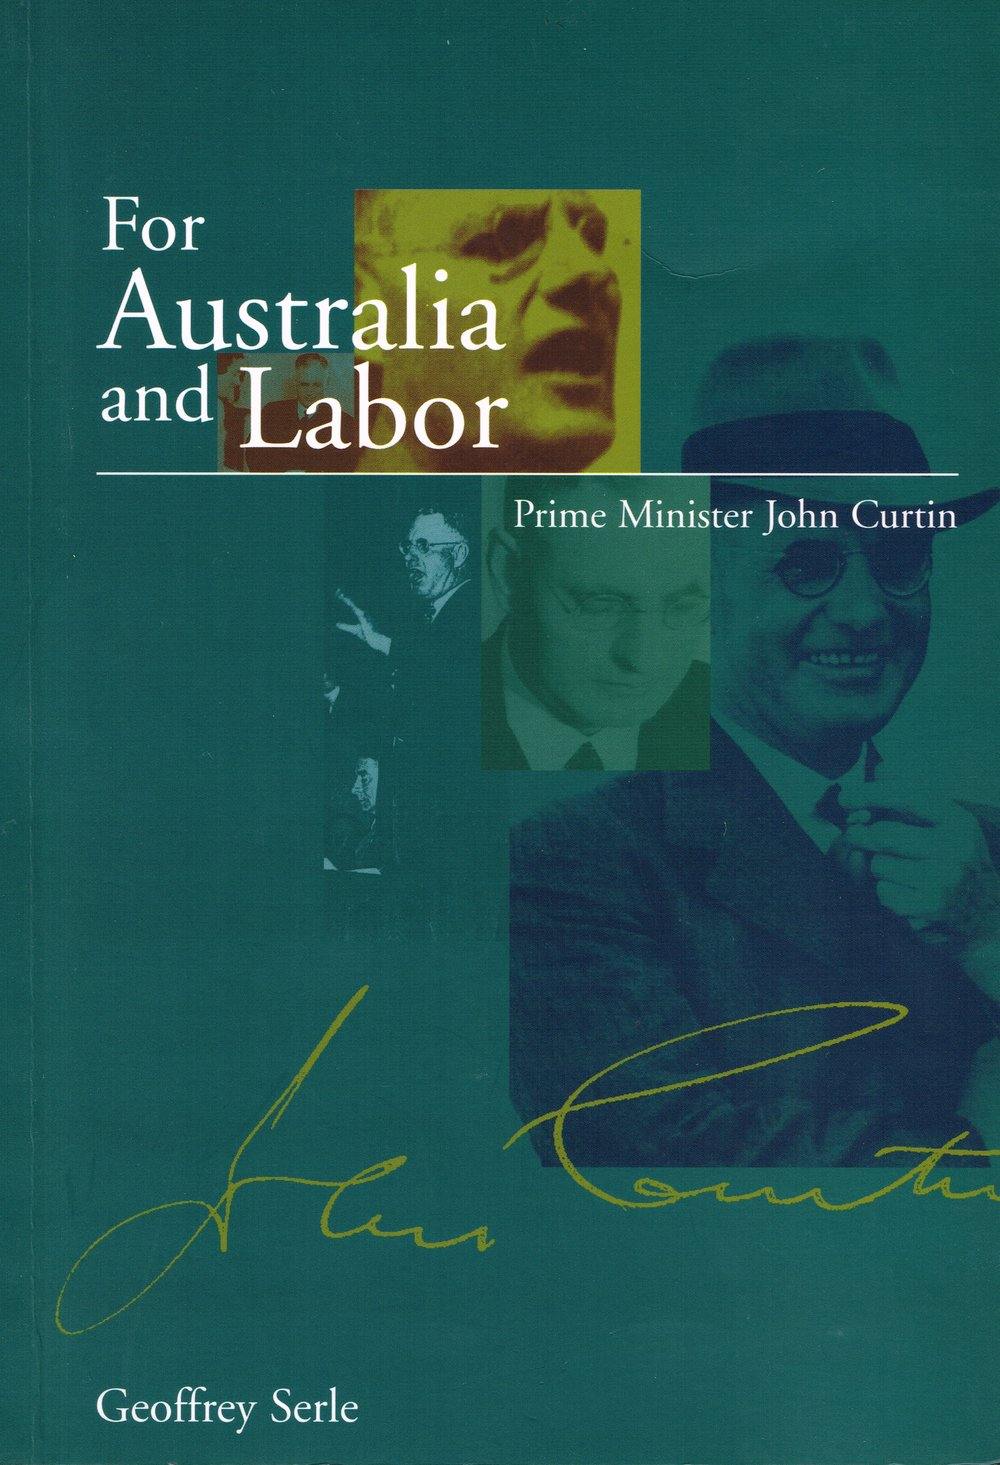 For Australia and Labor : Prime Minister John Curtin  Geoffrey Serle